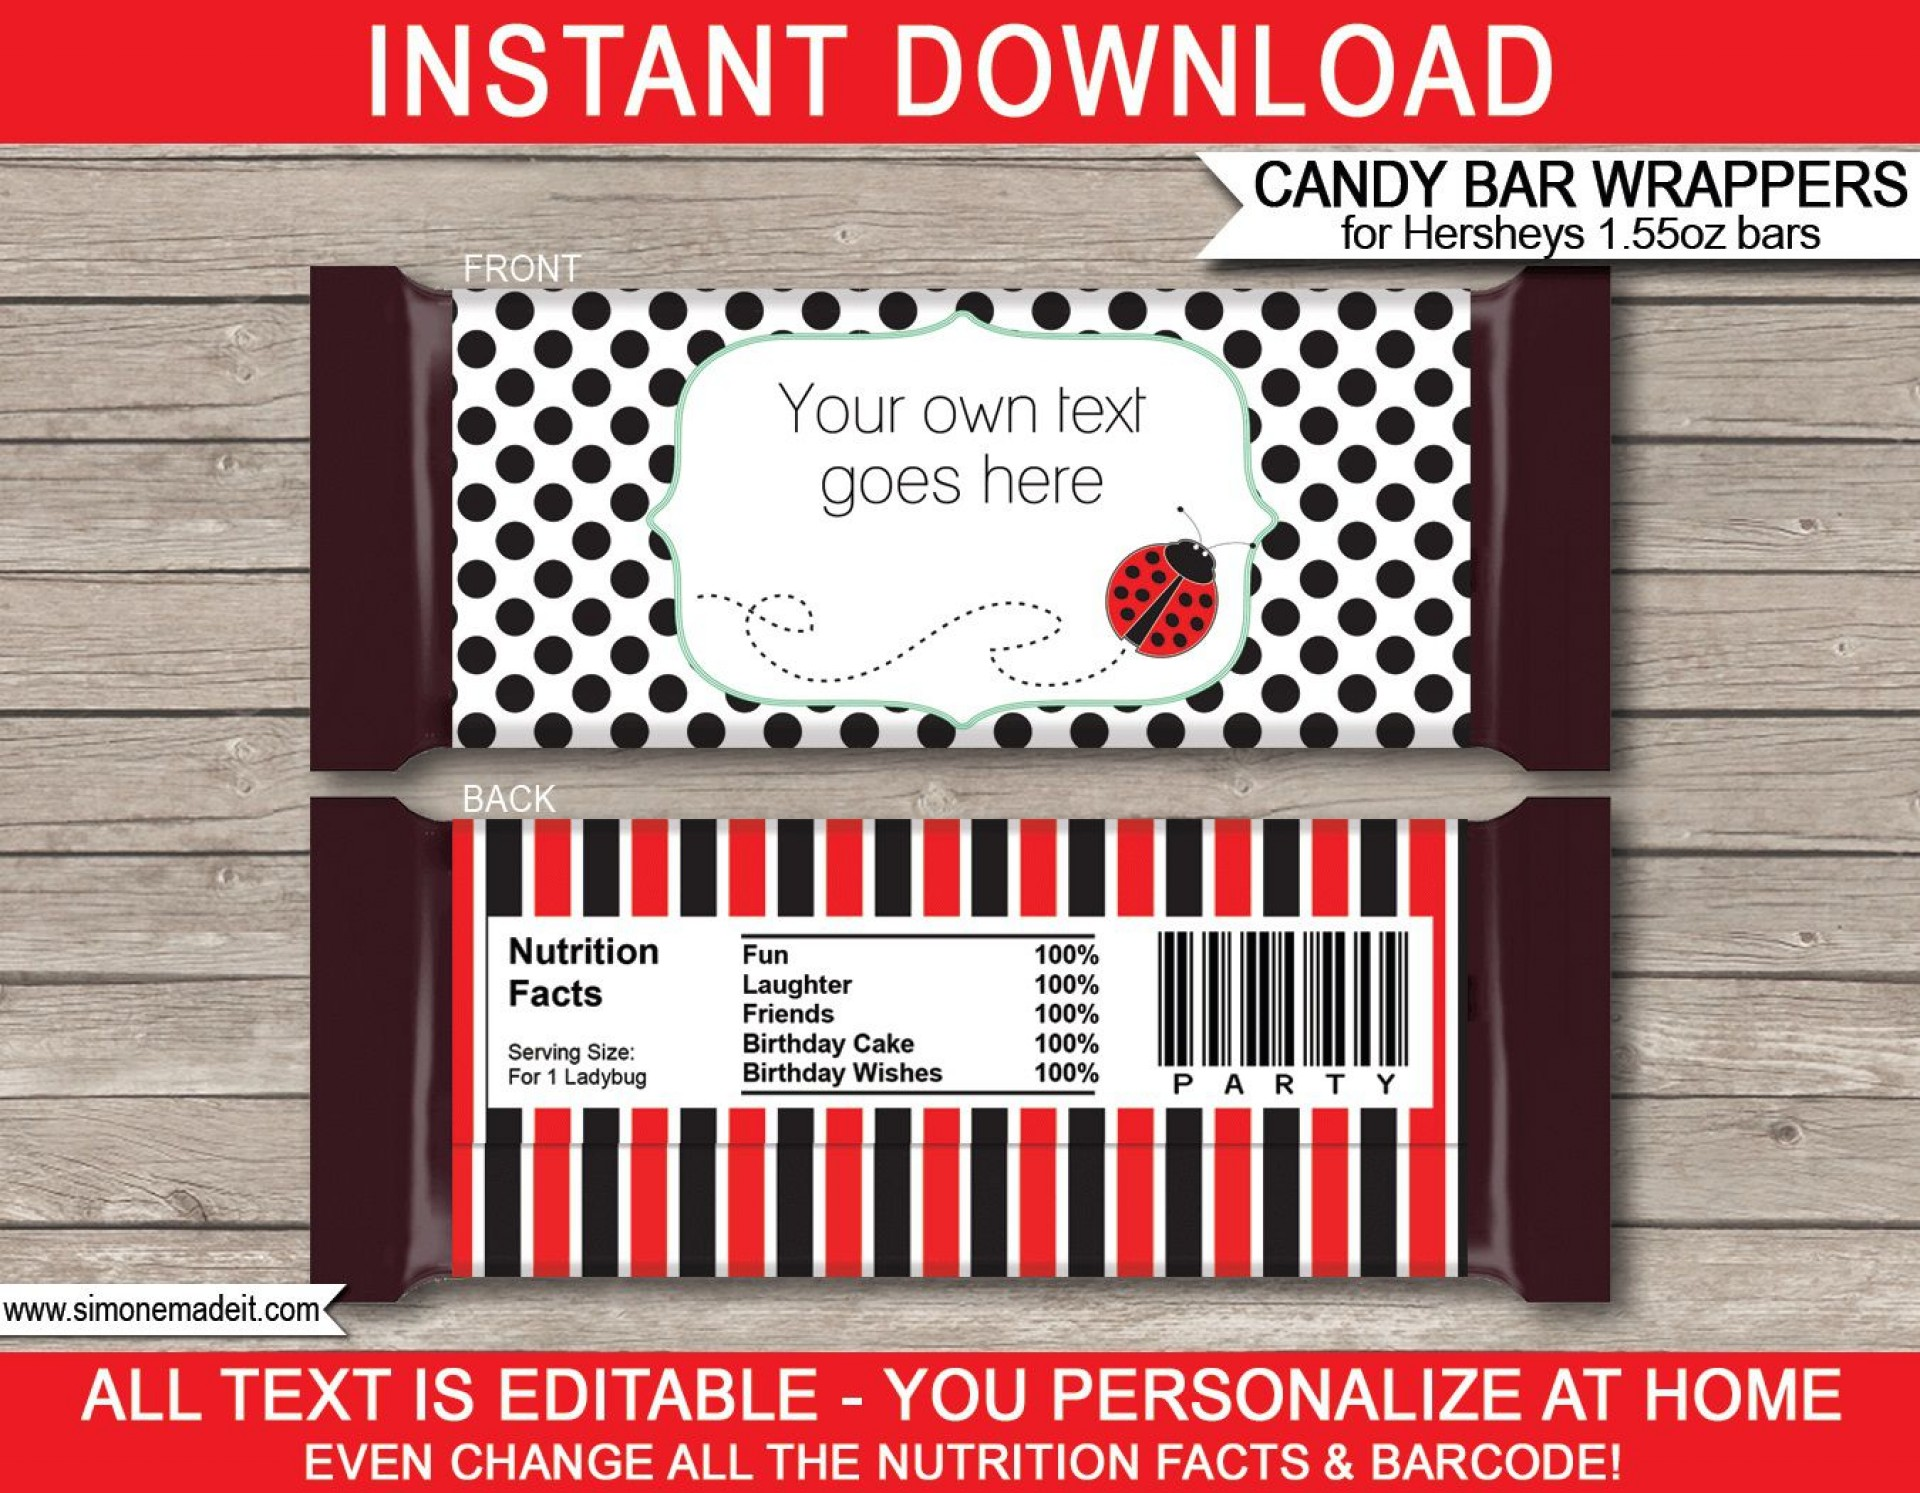 008 Top Chocolate Bar Wrapper Template Image  Candy Free Printable Mini Illustrator1920